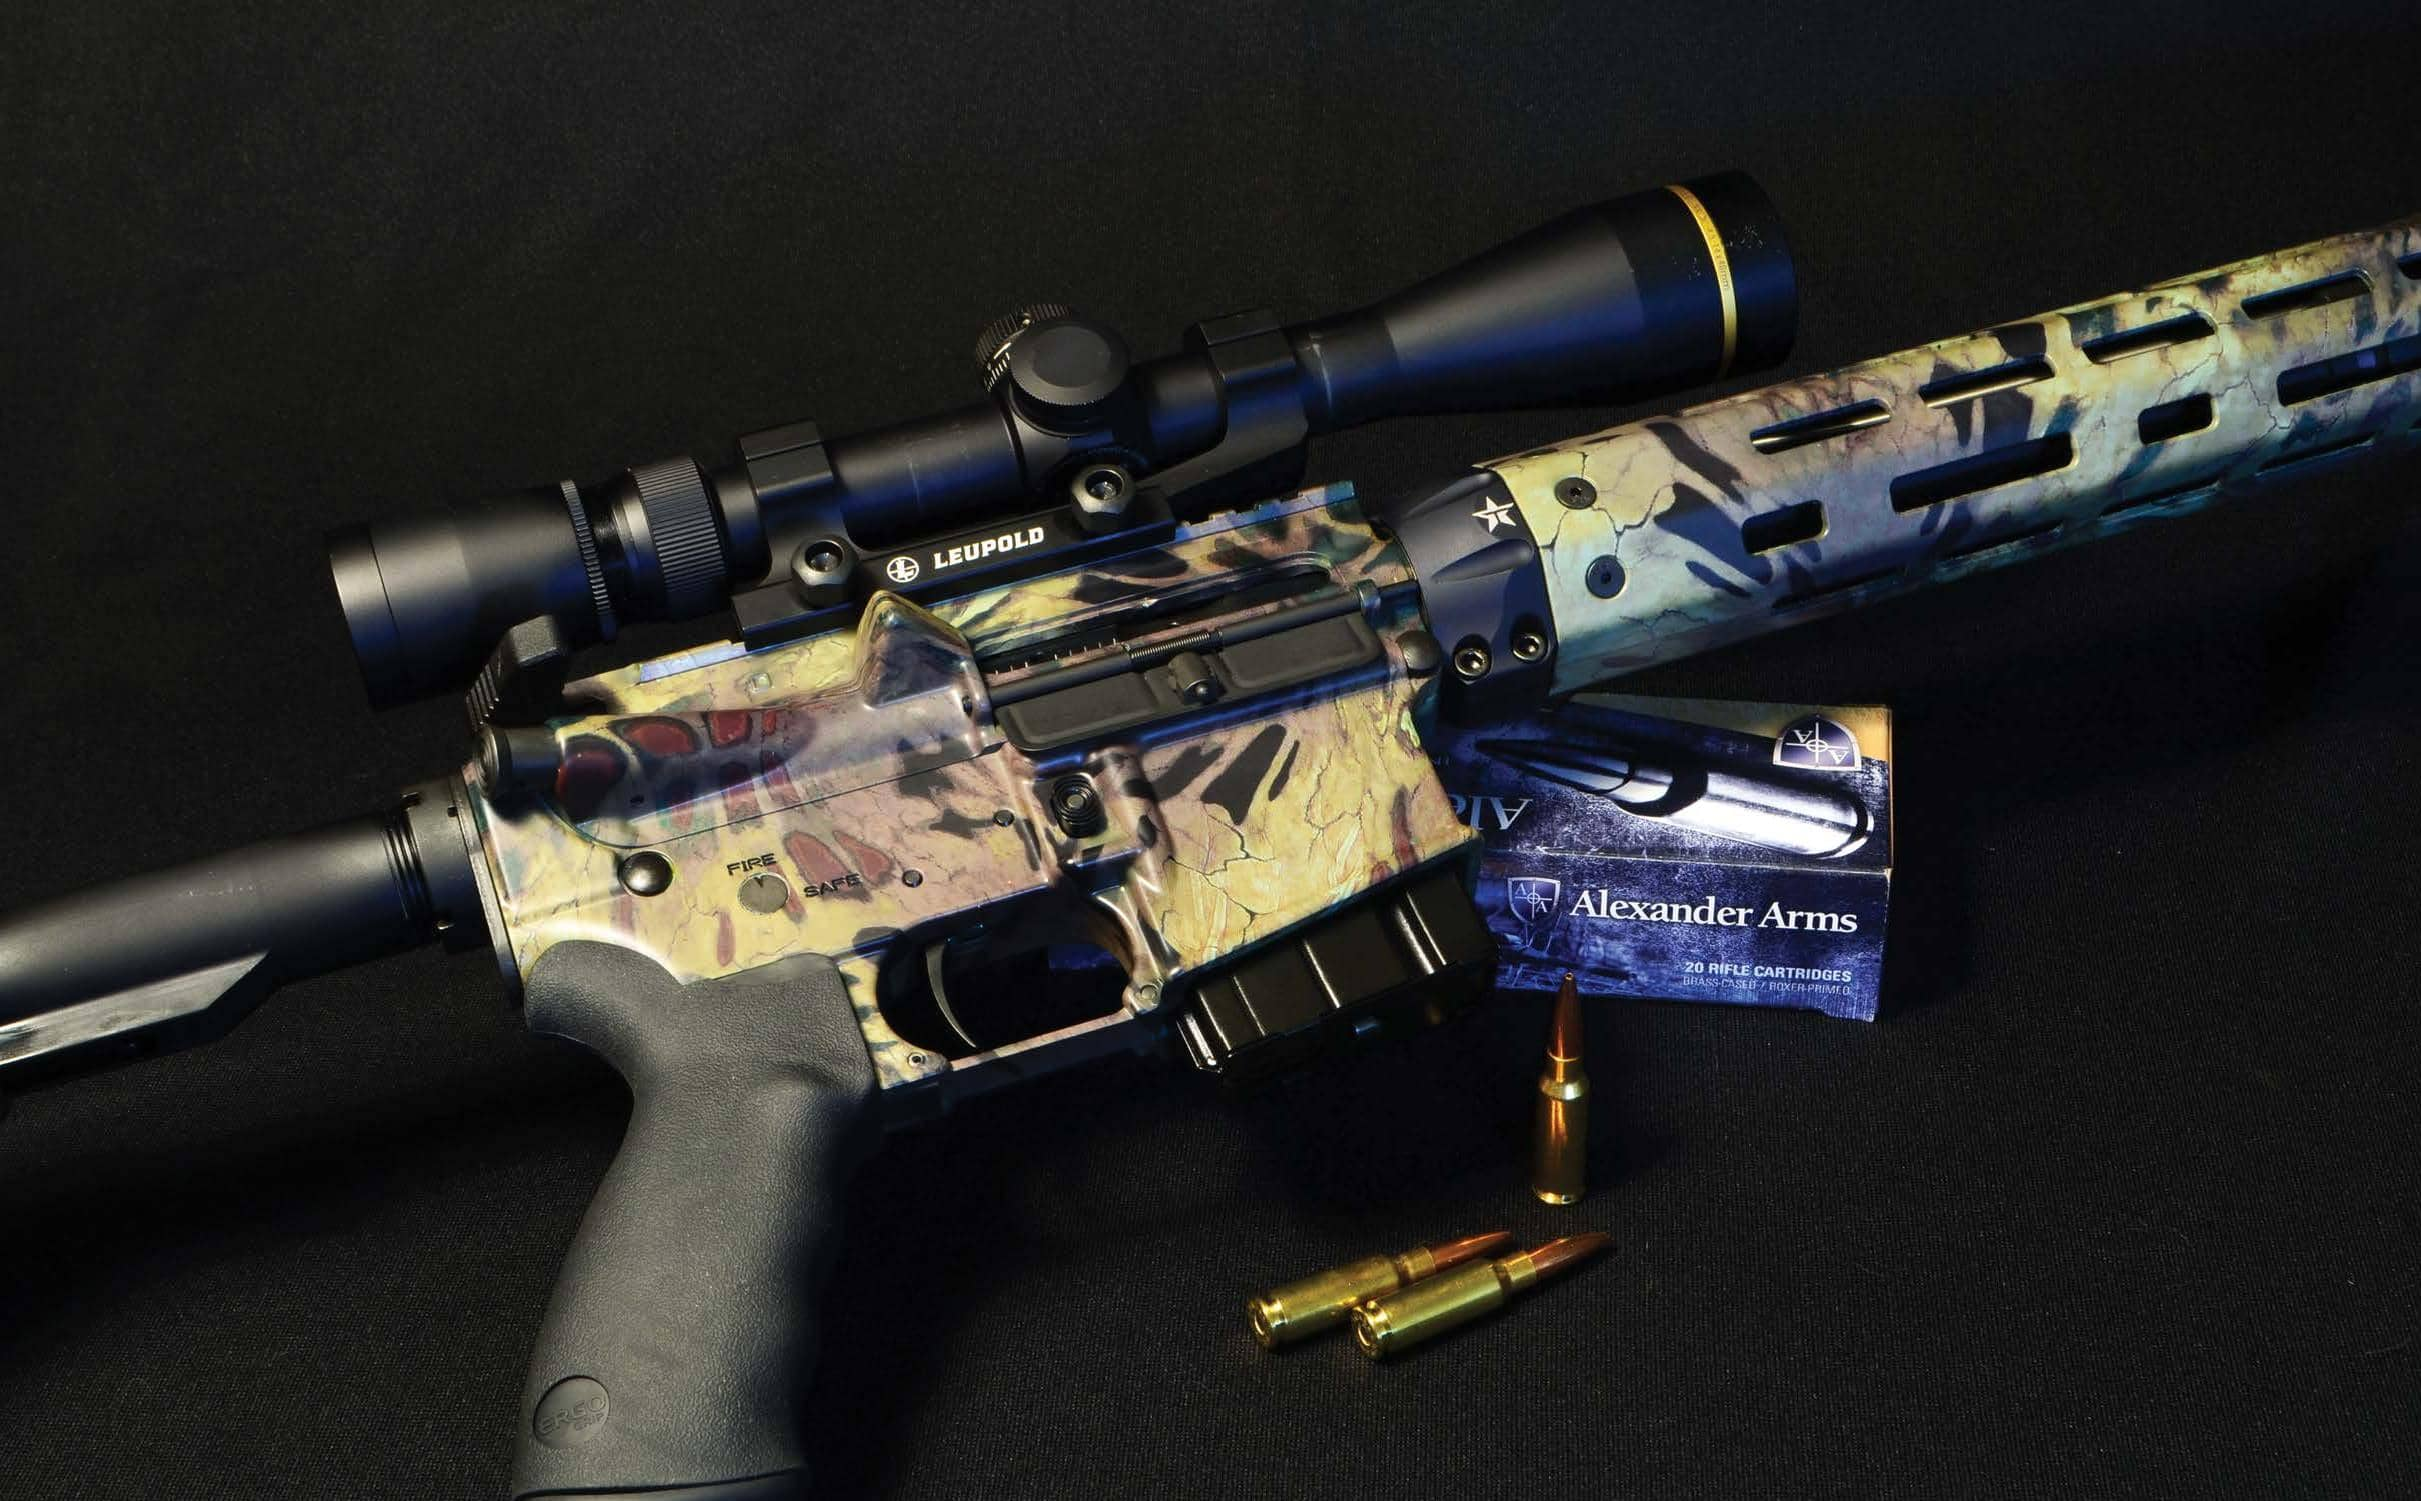 Alexander Arms Hunter New Rifle in 6.5 Grendel